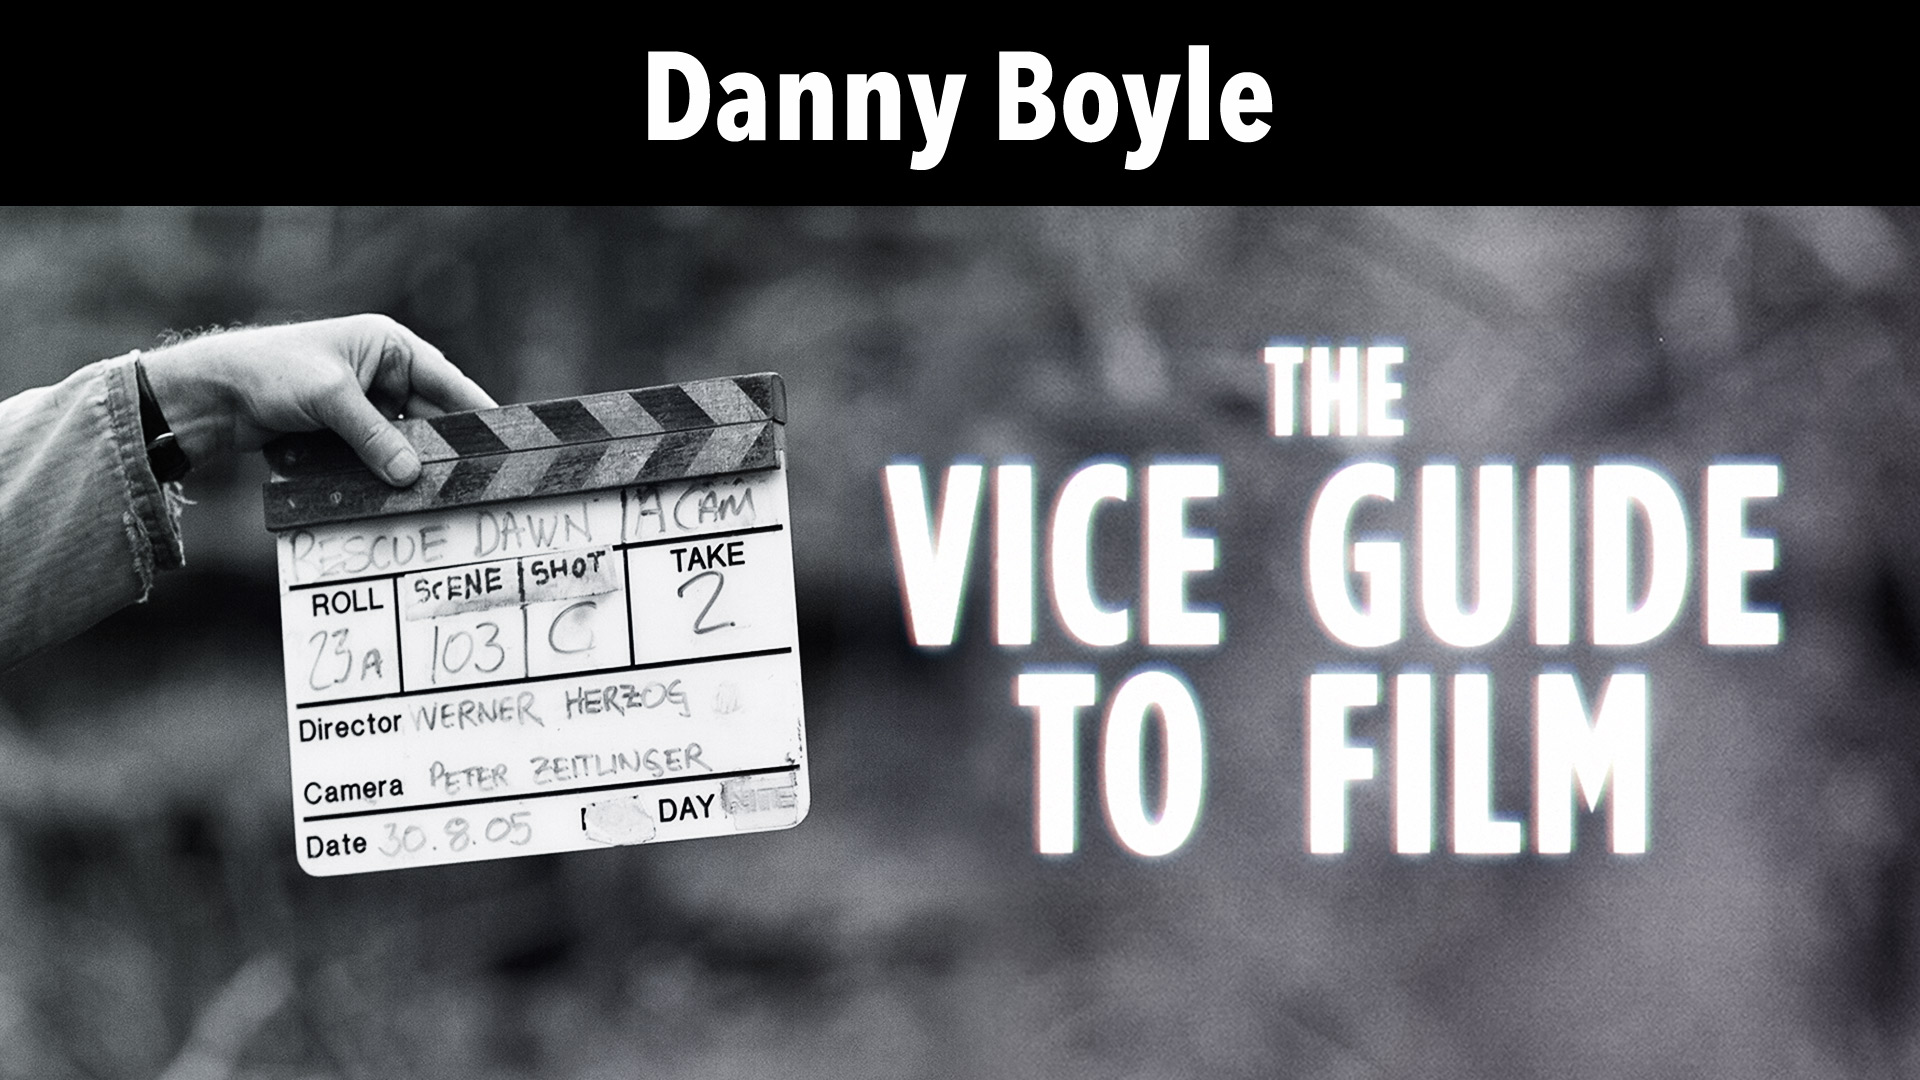 Danny Boyle: Vice Guide To Film